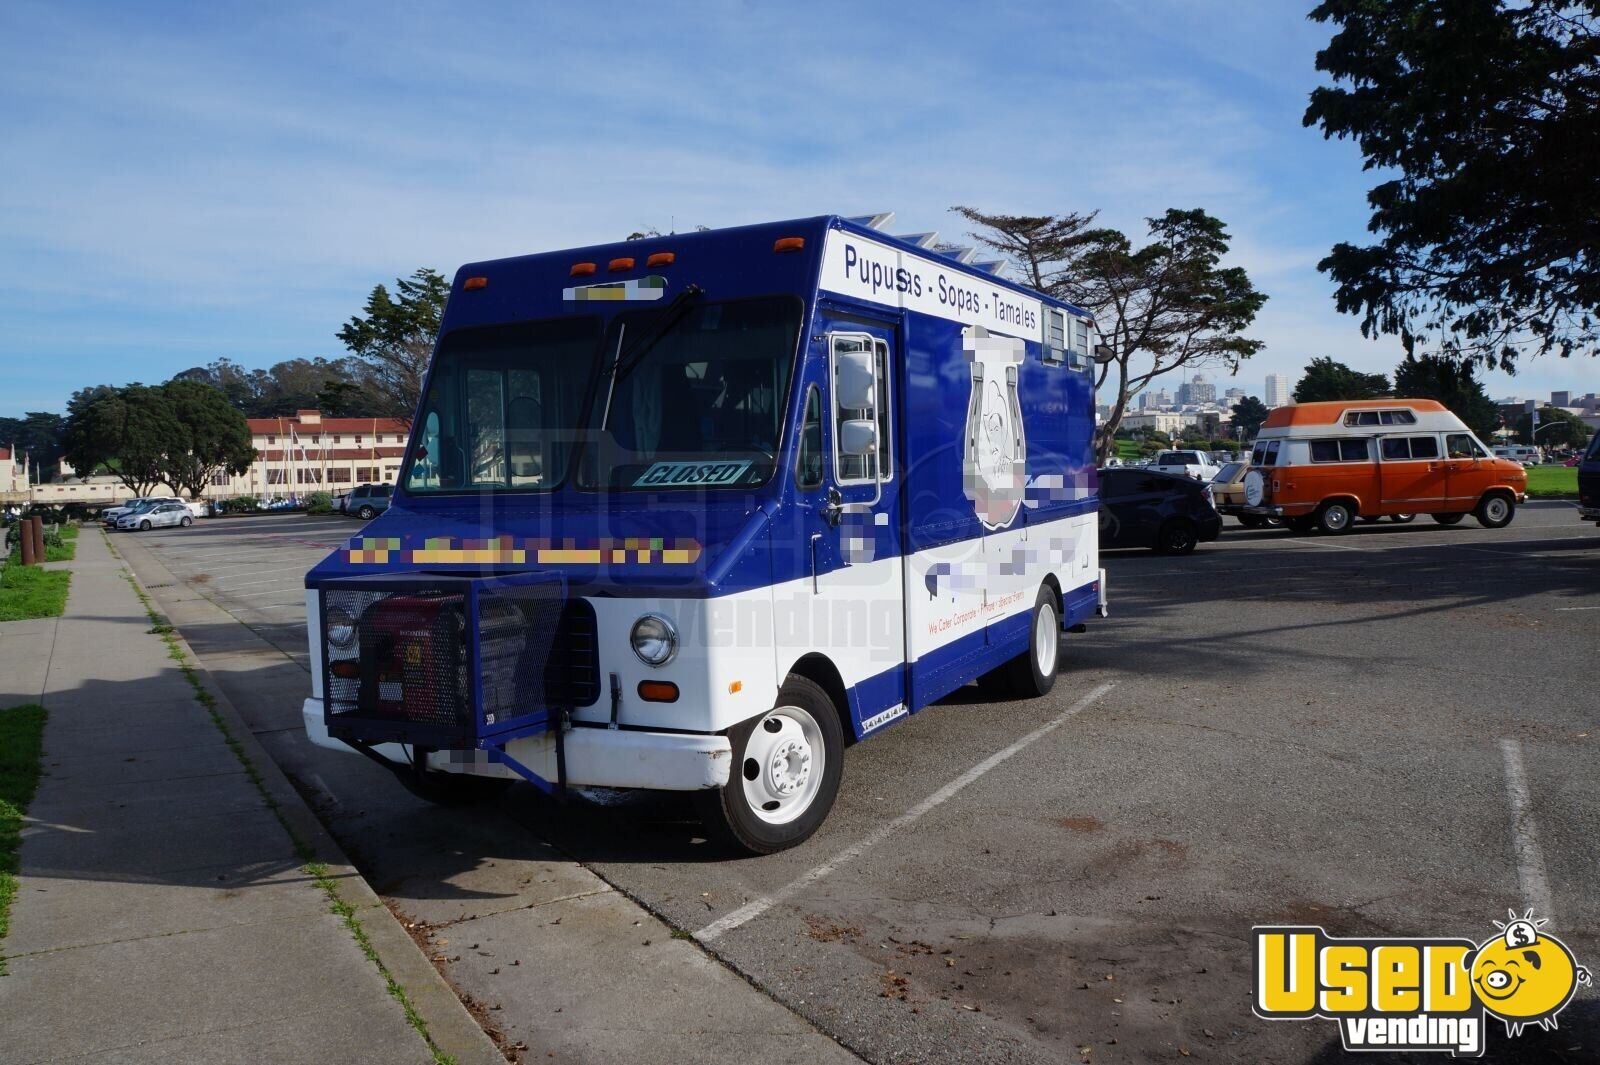 1995 Gmc All-purpose Food Truck Cabinets California Gas Engine for Sale - 3